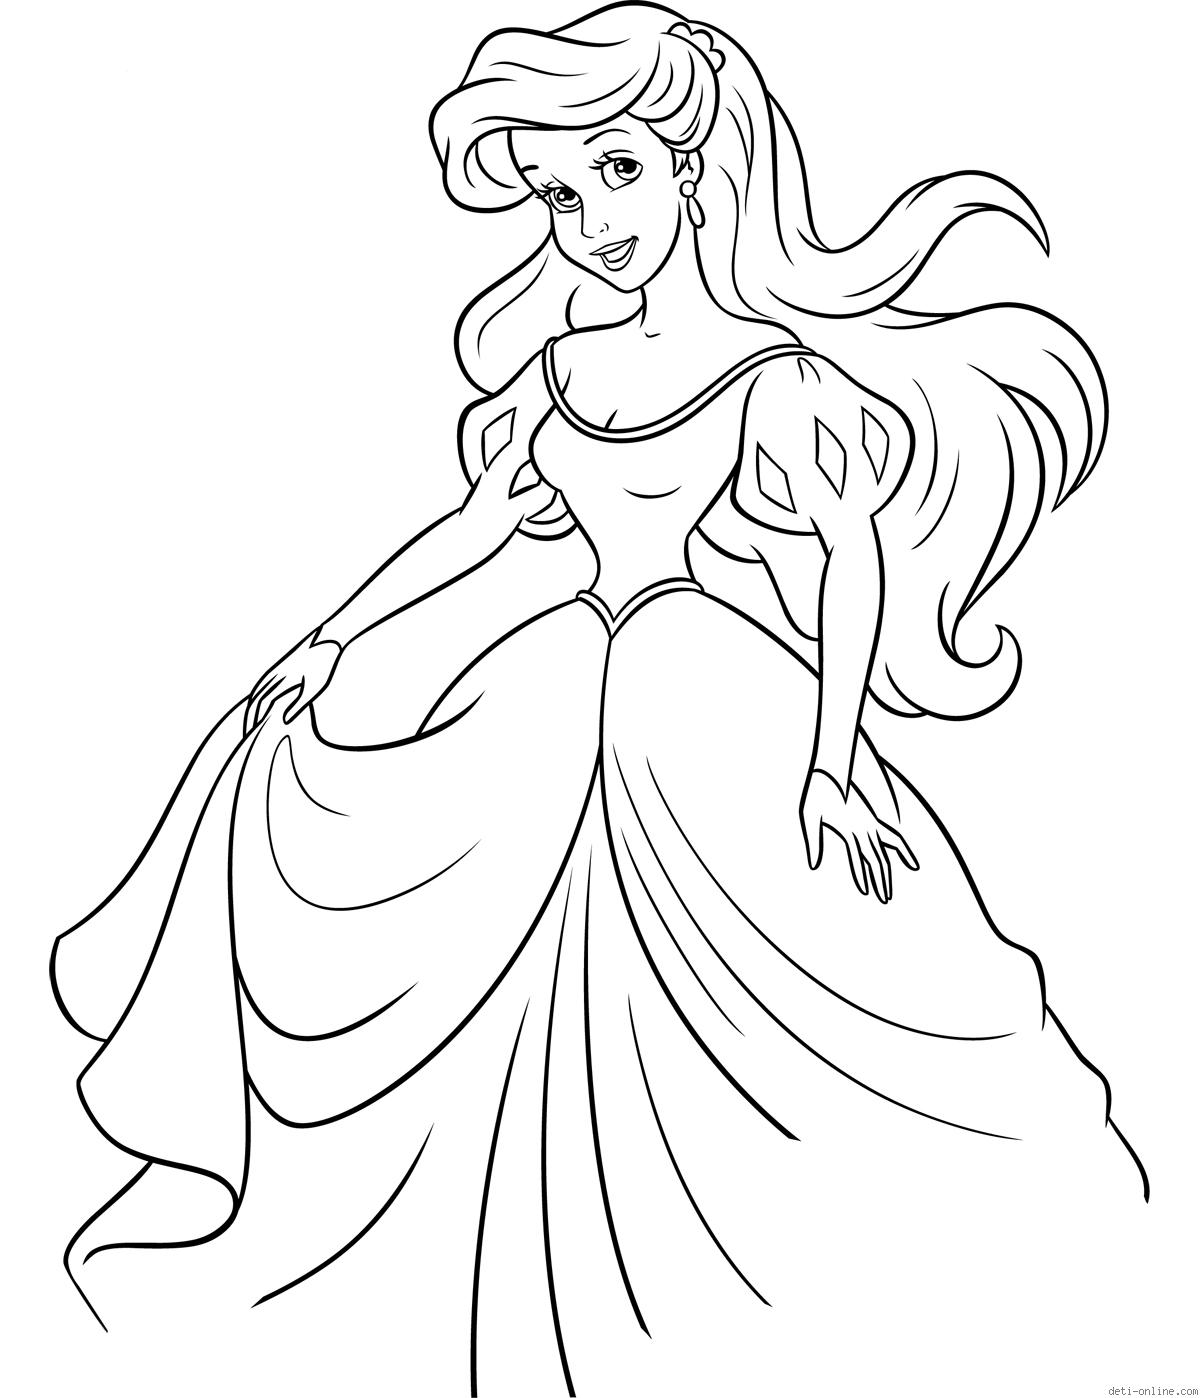 ariel disney coloring ariel the little mermaid coloring pages for girls to print coloring ariel disney